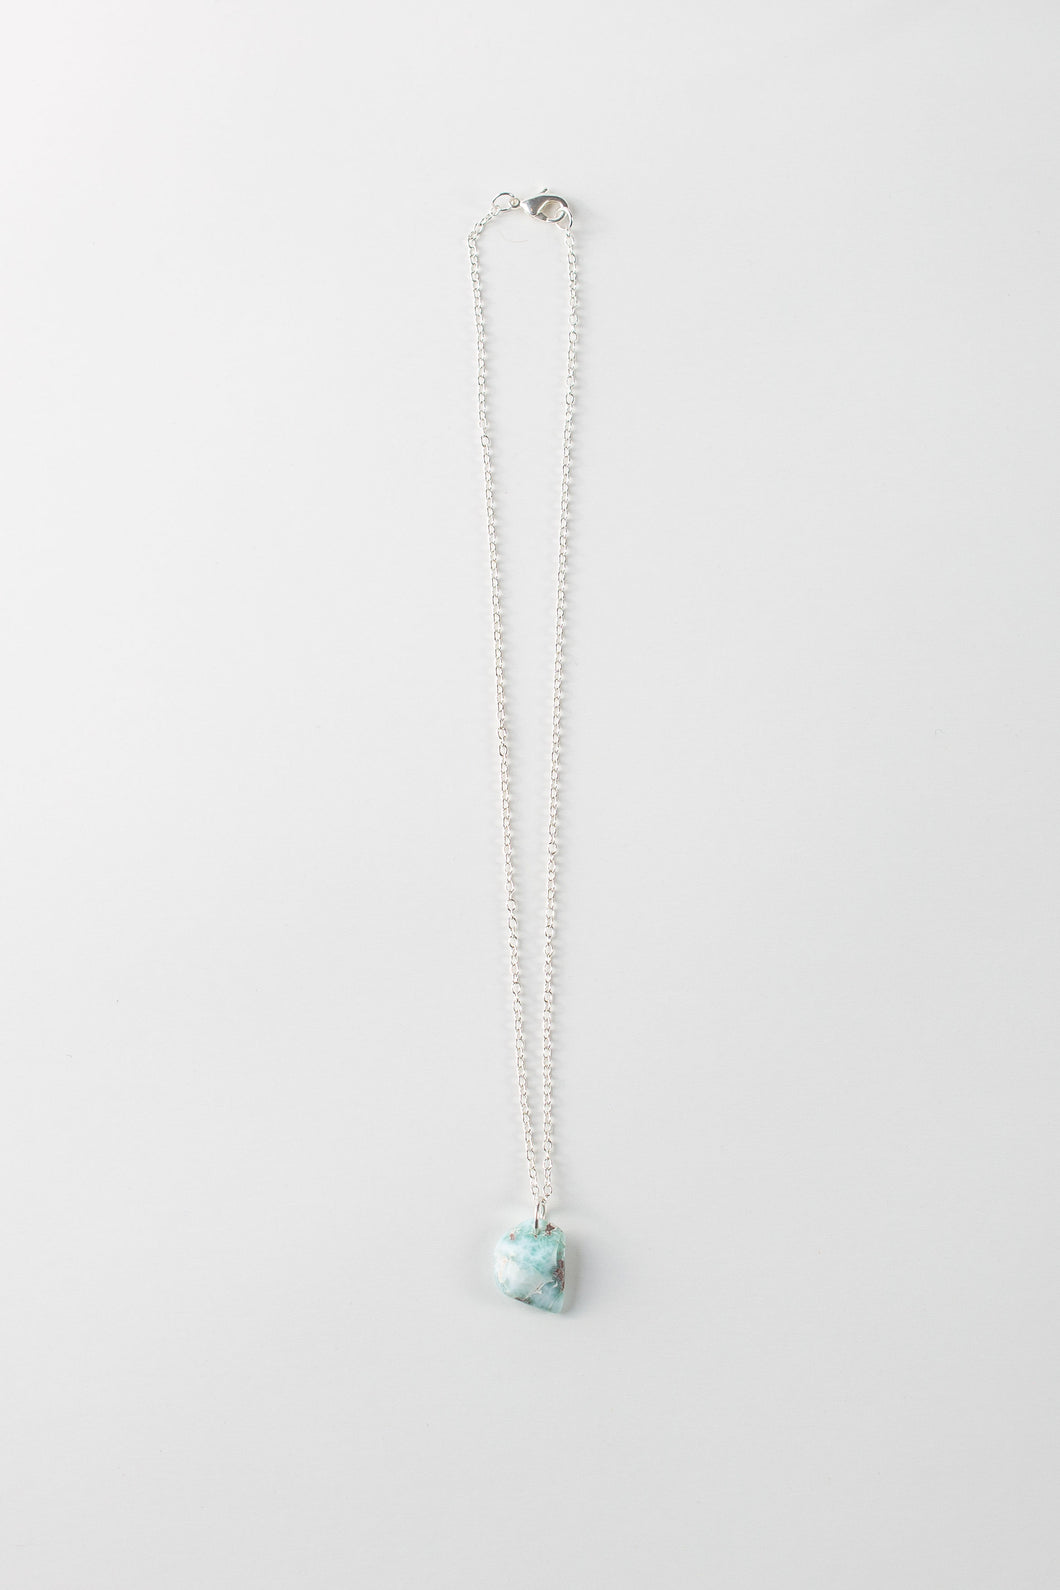 Aqua Shores Necklace